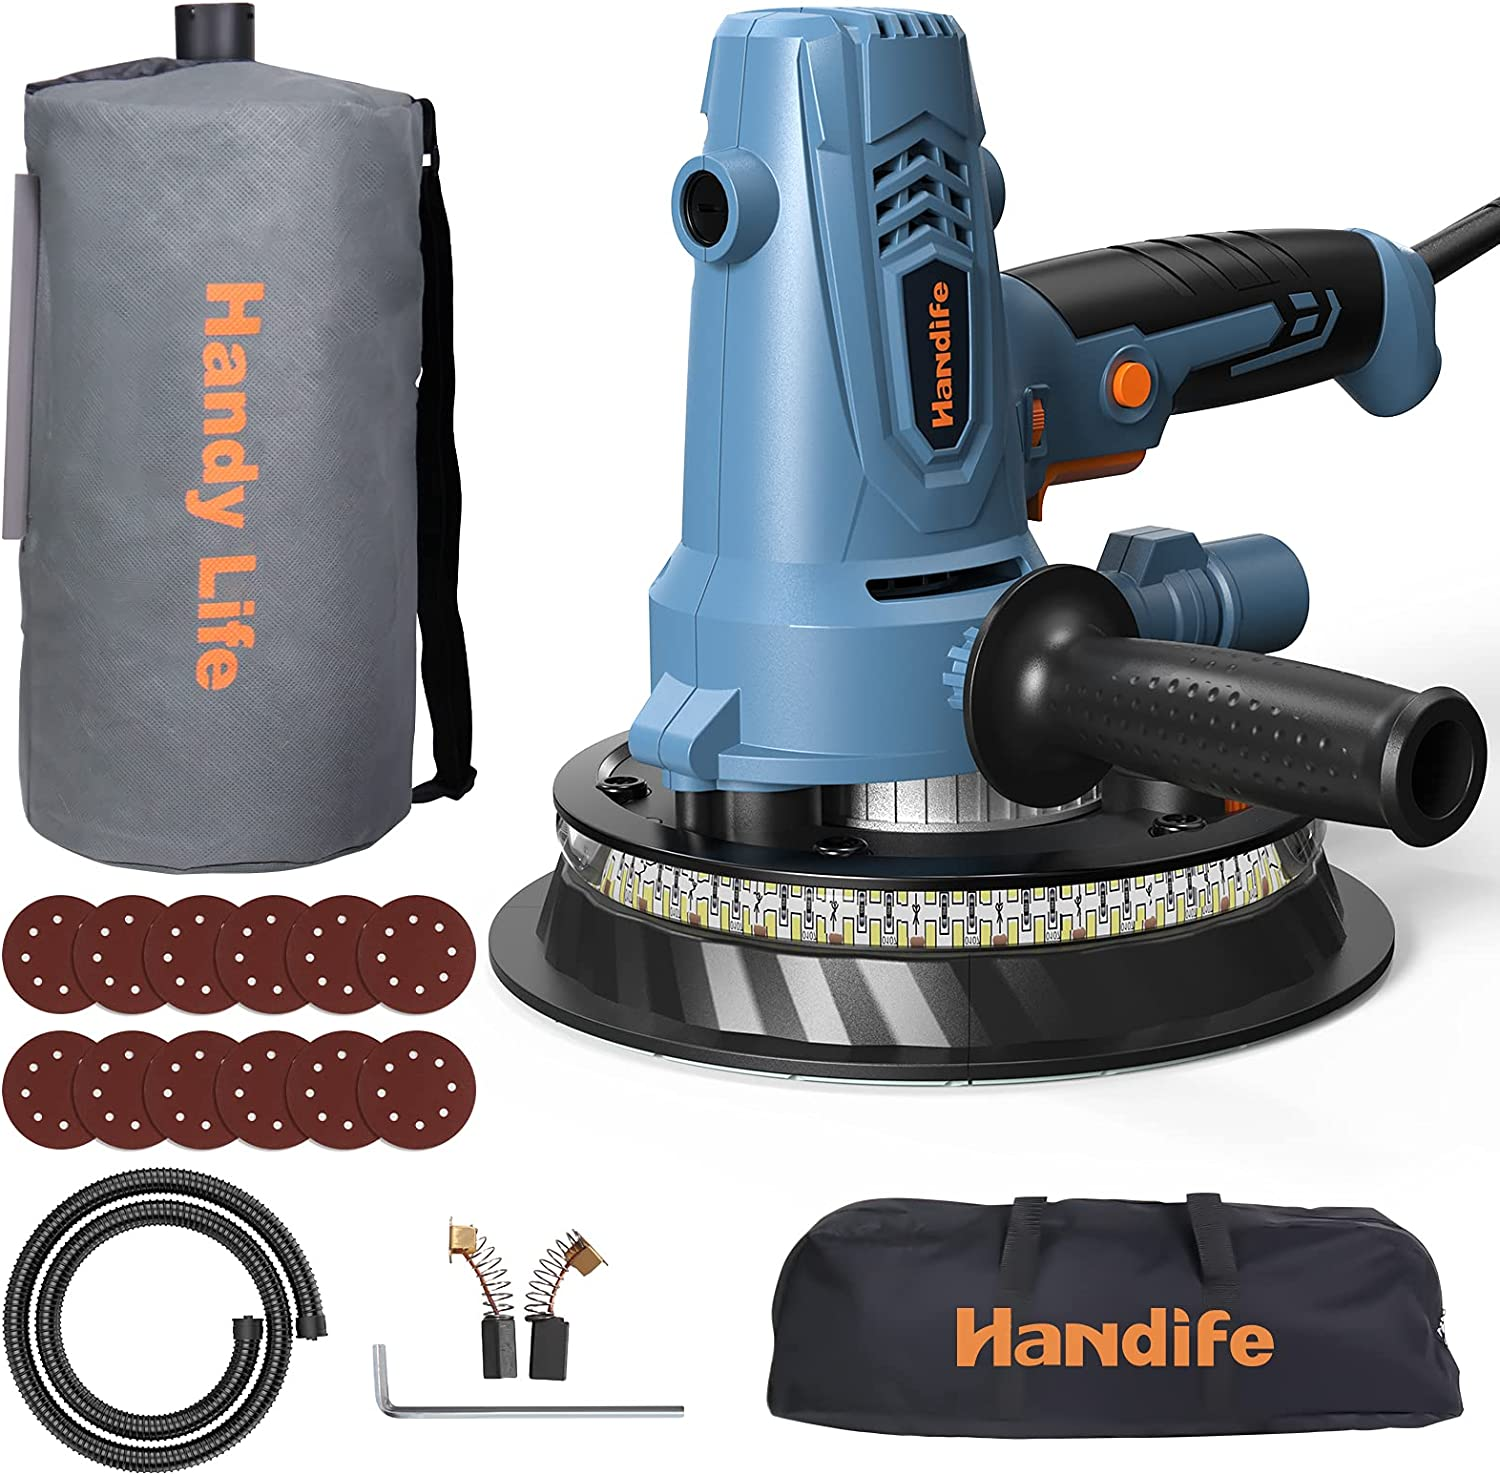 Handife Handheld Outlet SALE Drywall Limited time trial price Sander 7A Electric Dryw for 800W